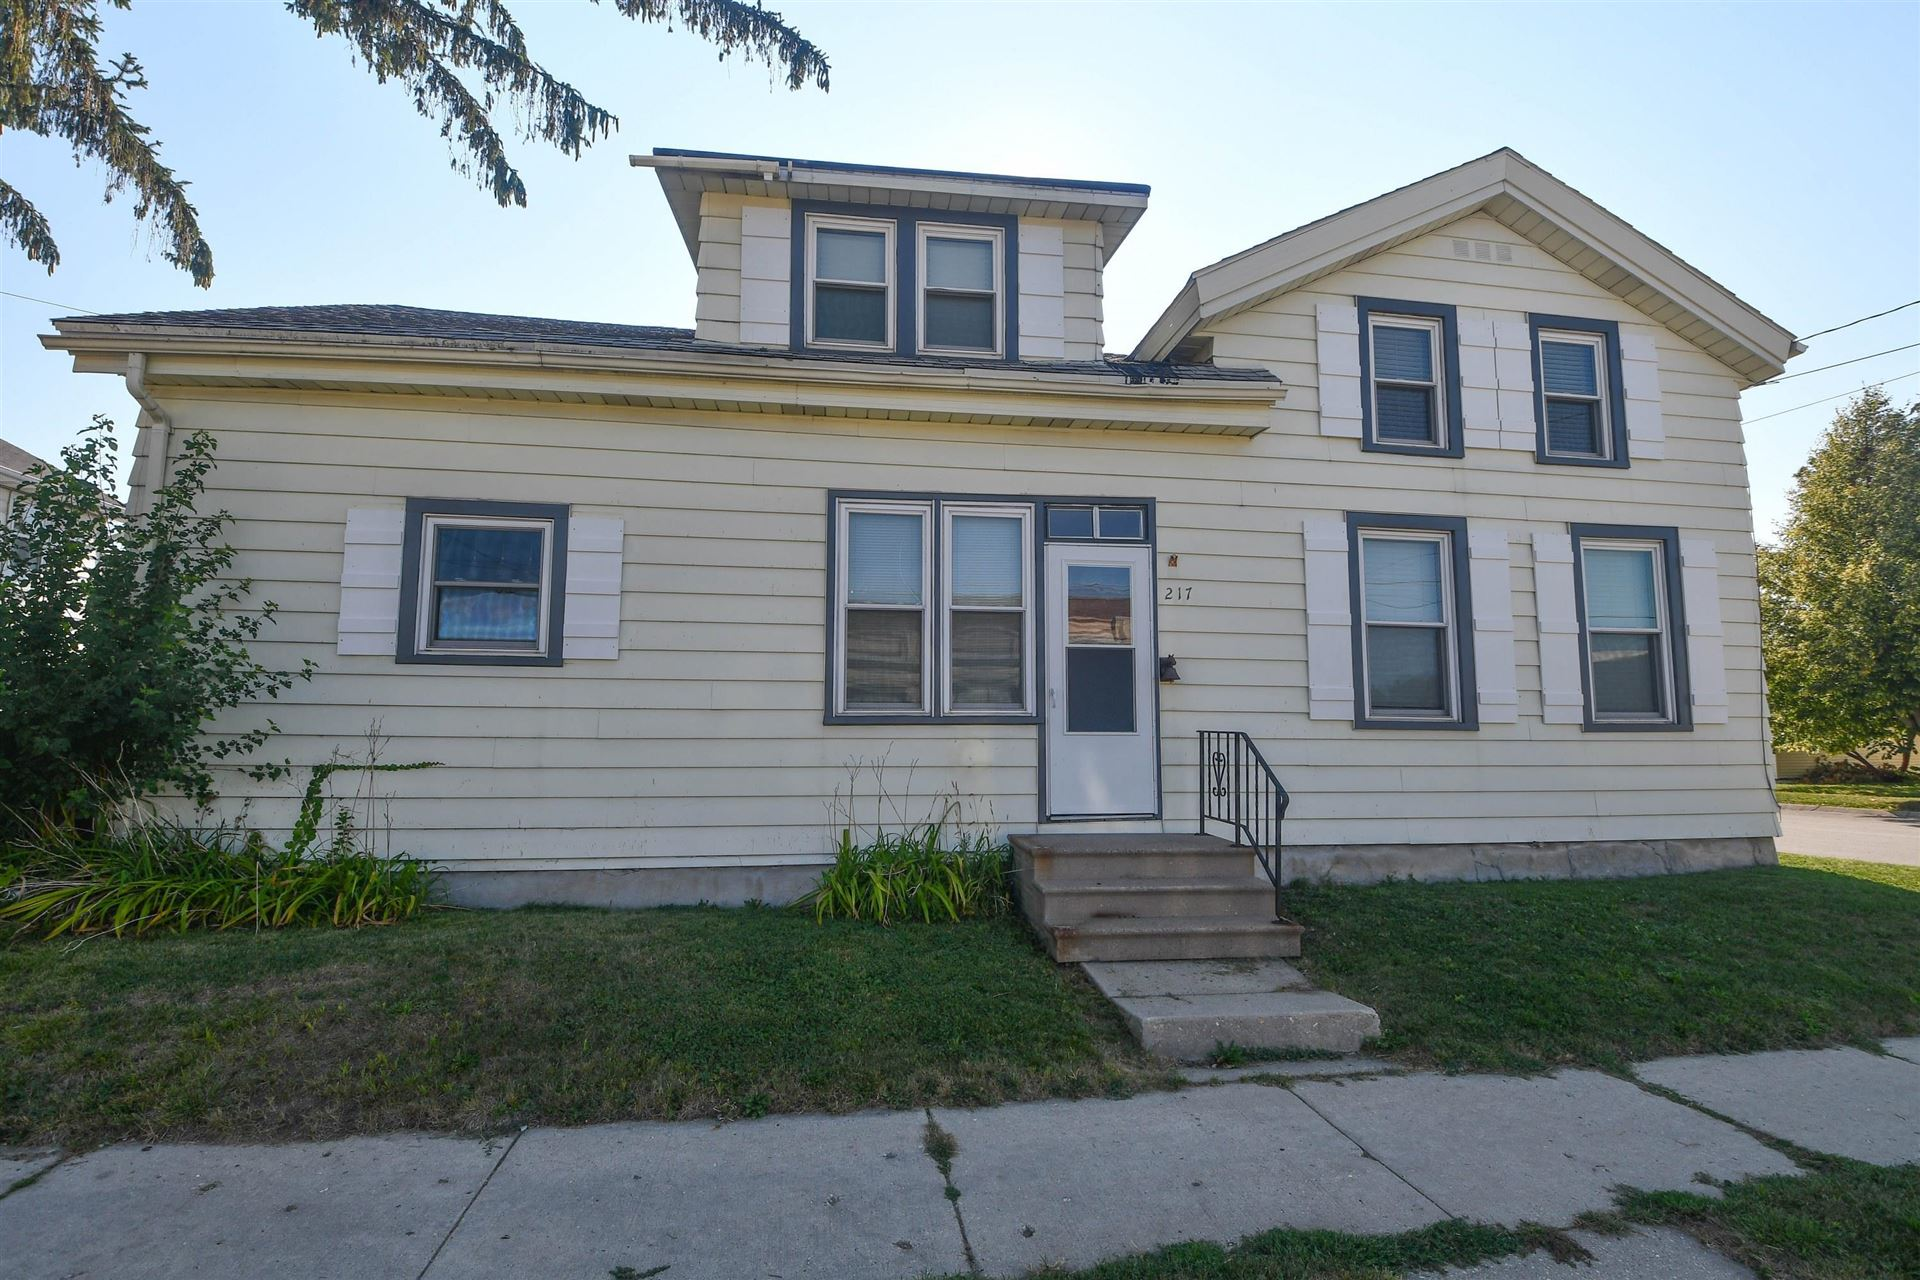 217 S 1st St, Watertown, WI 53094 - #: 1921798